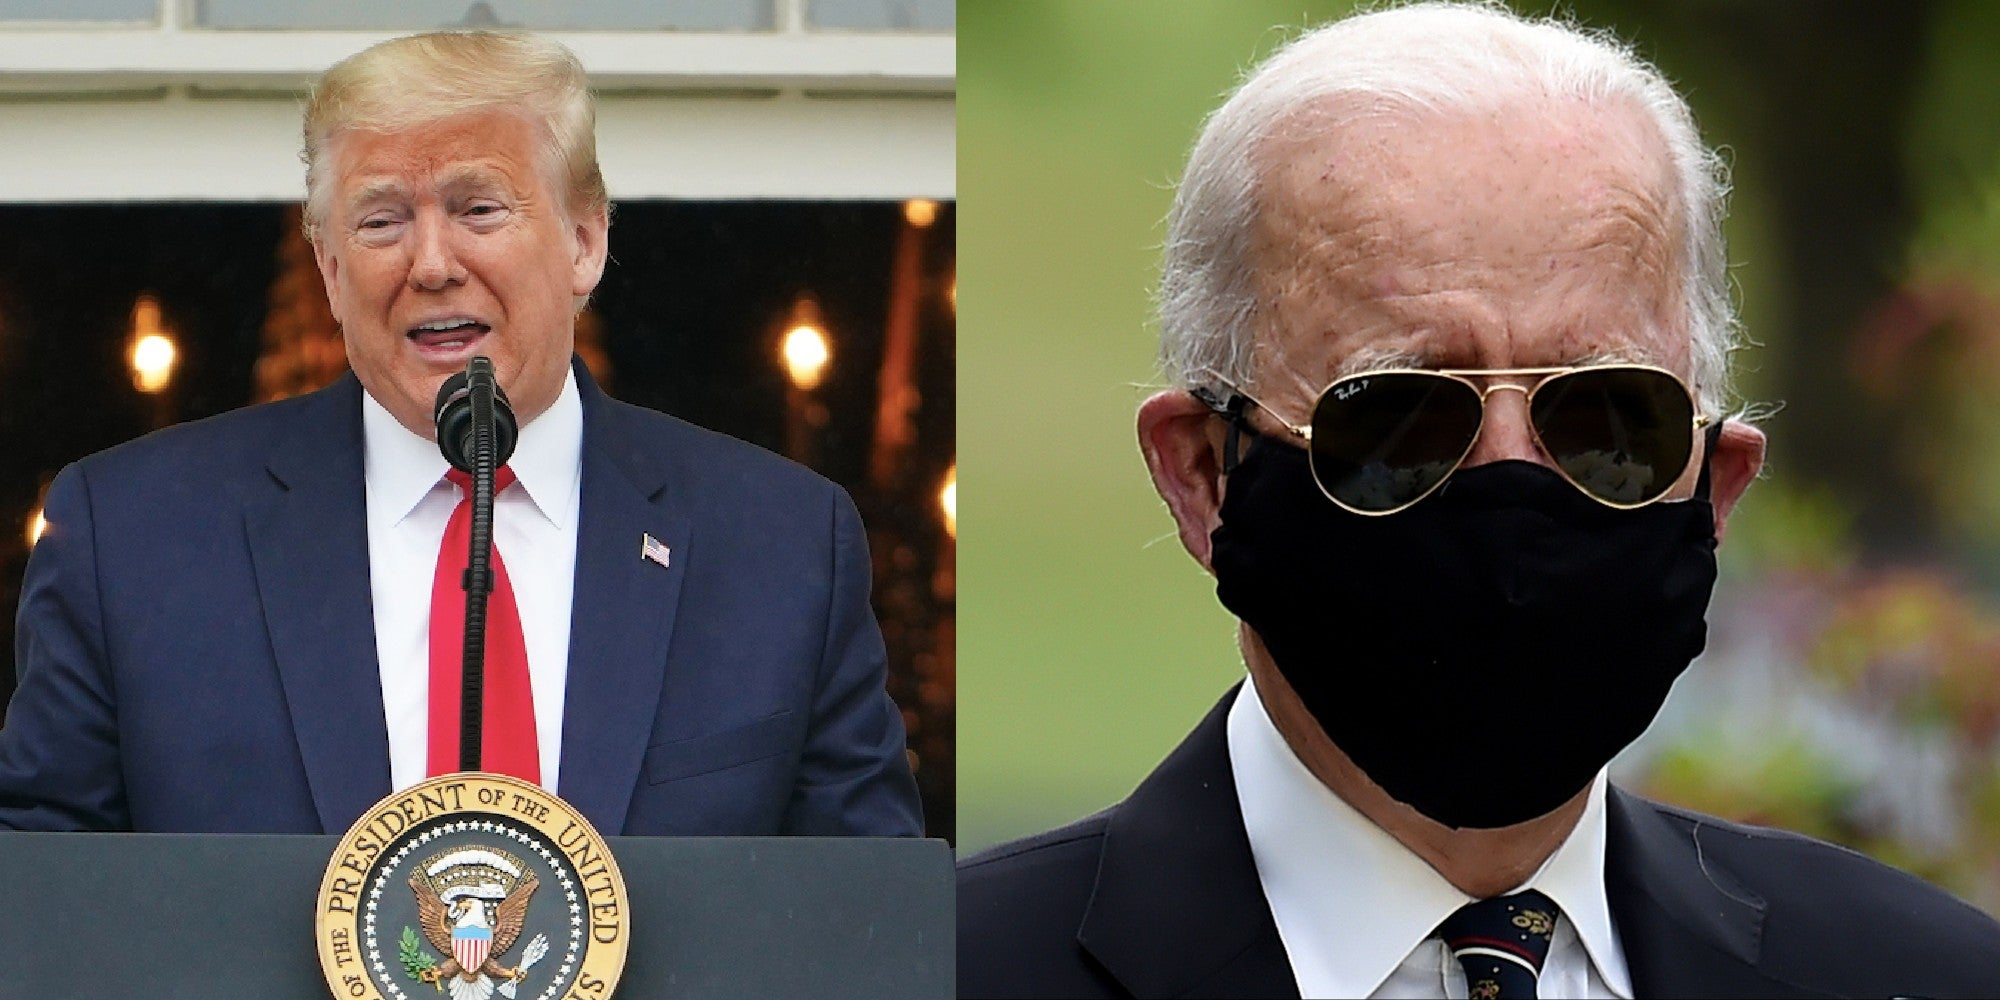 Trump is now mocking people for wearing face masks even at Memorial Day events